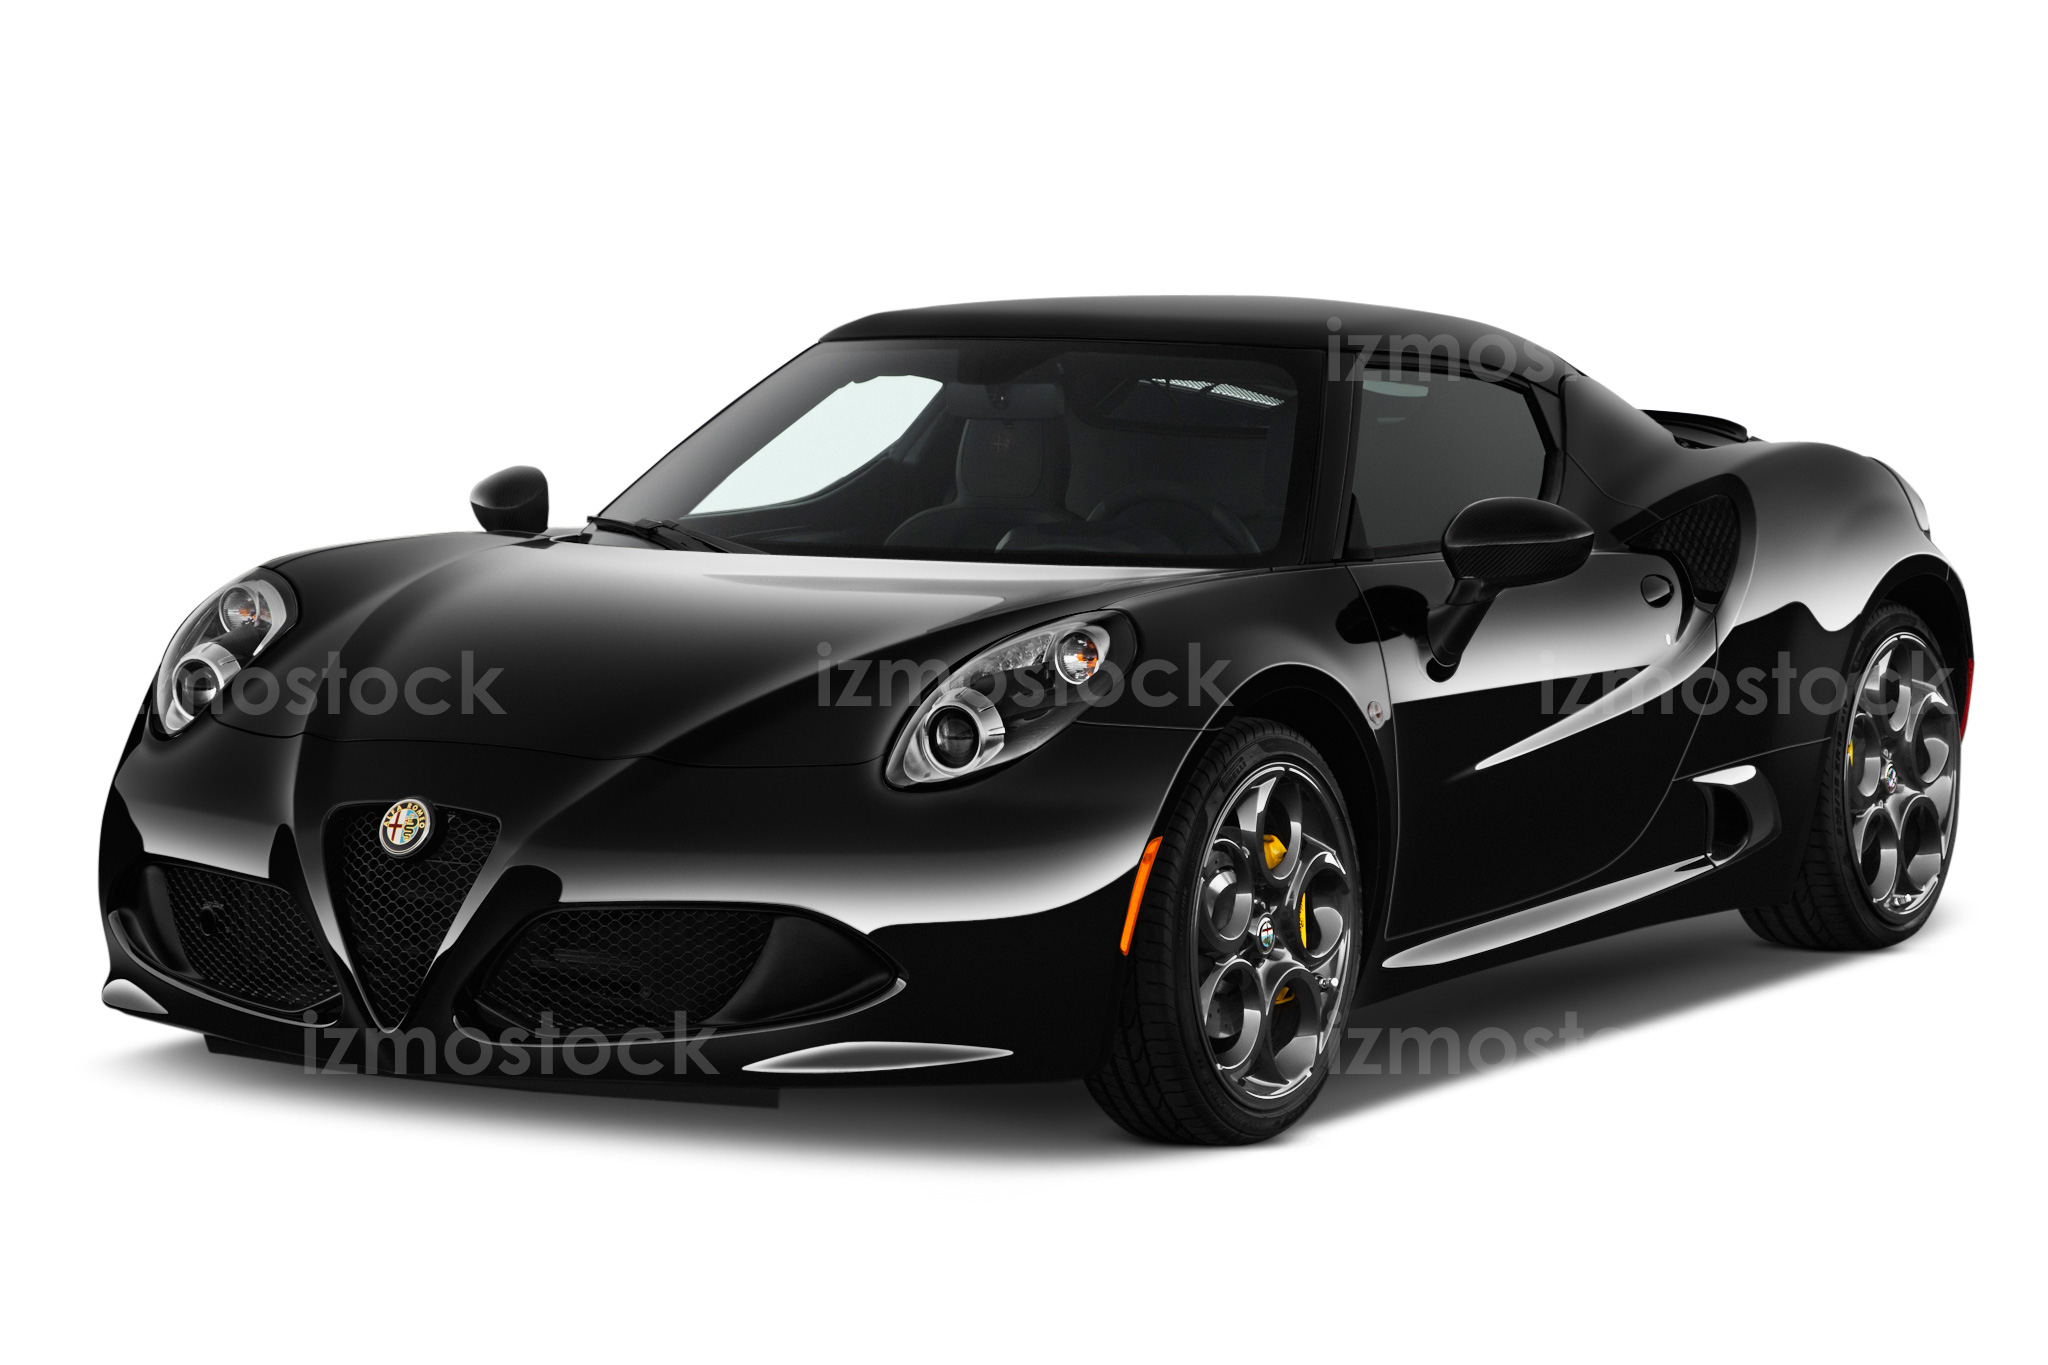 2016 alfa romeo 4c coupe affordable track ready sports car. Black Bedroom Furniture Sets. Home Design Ideas